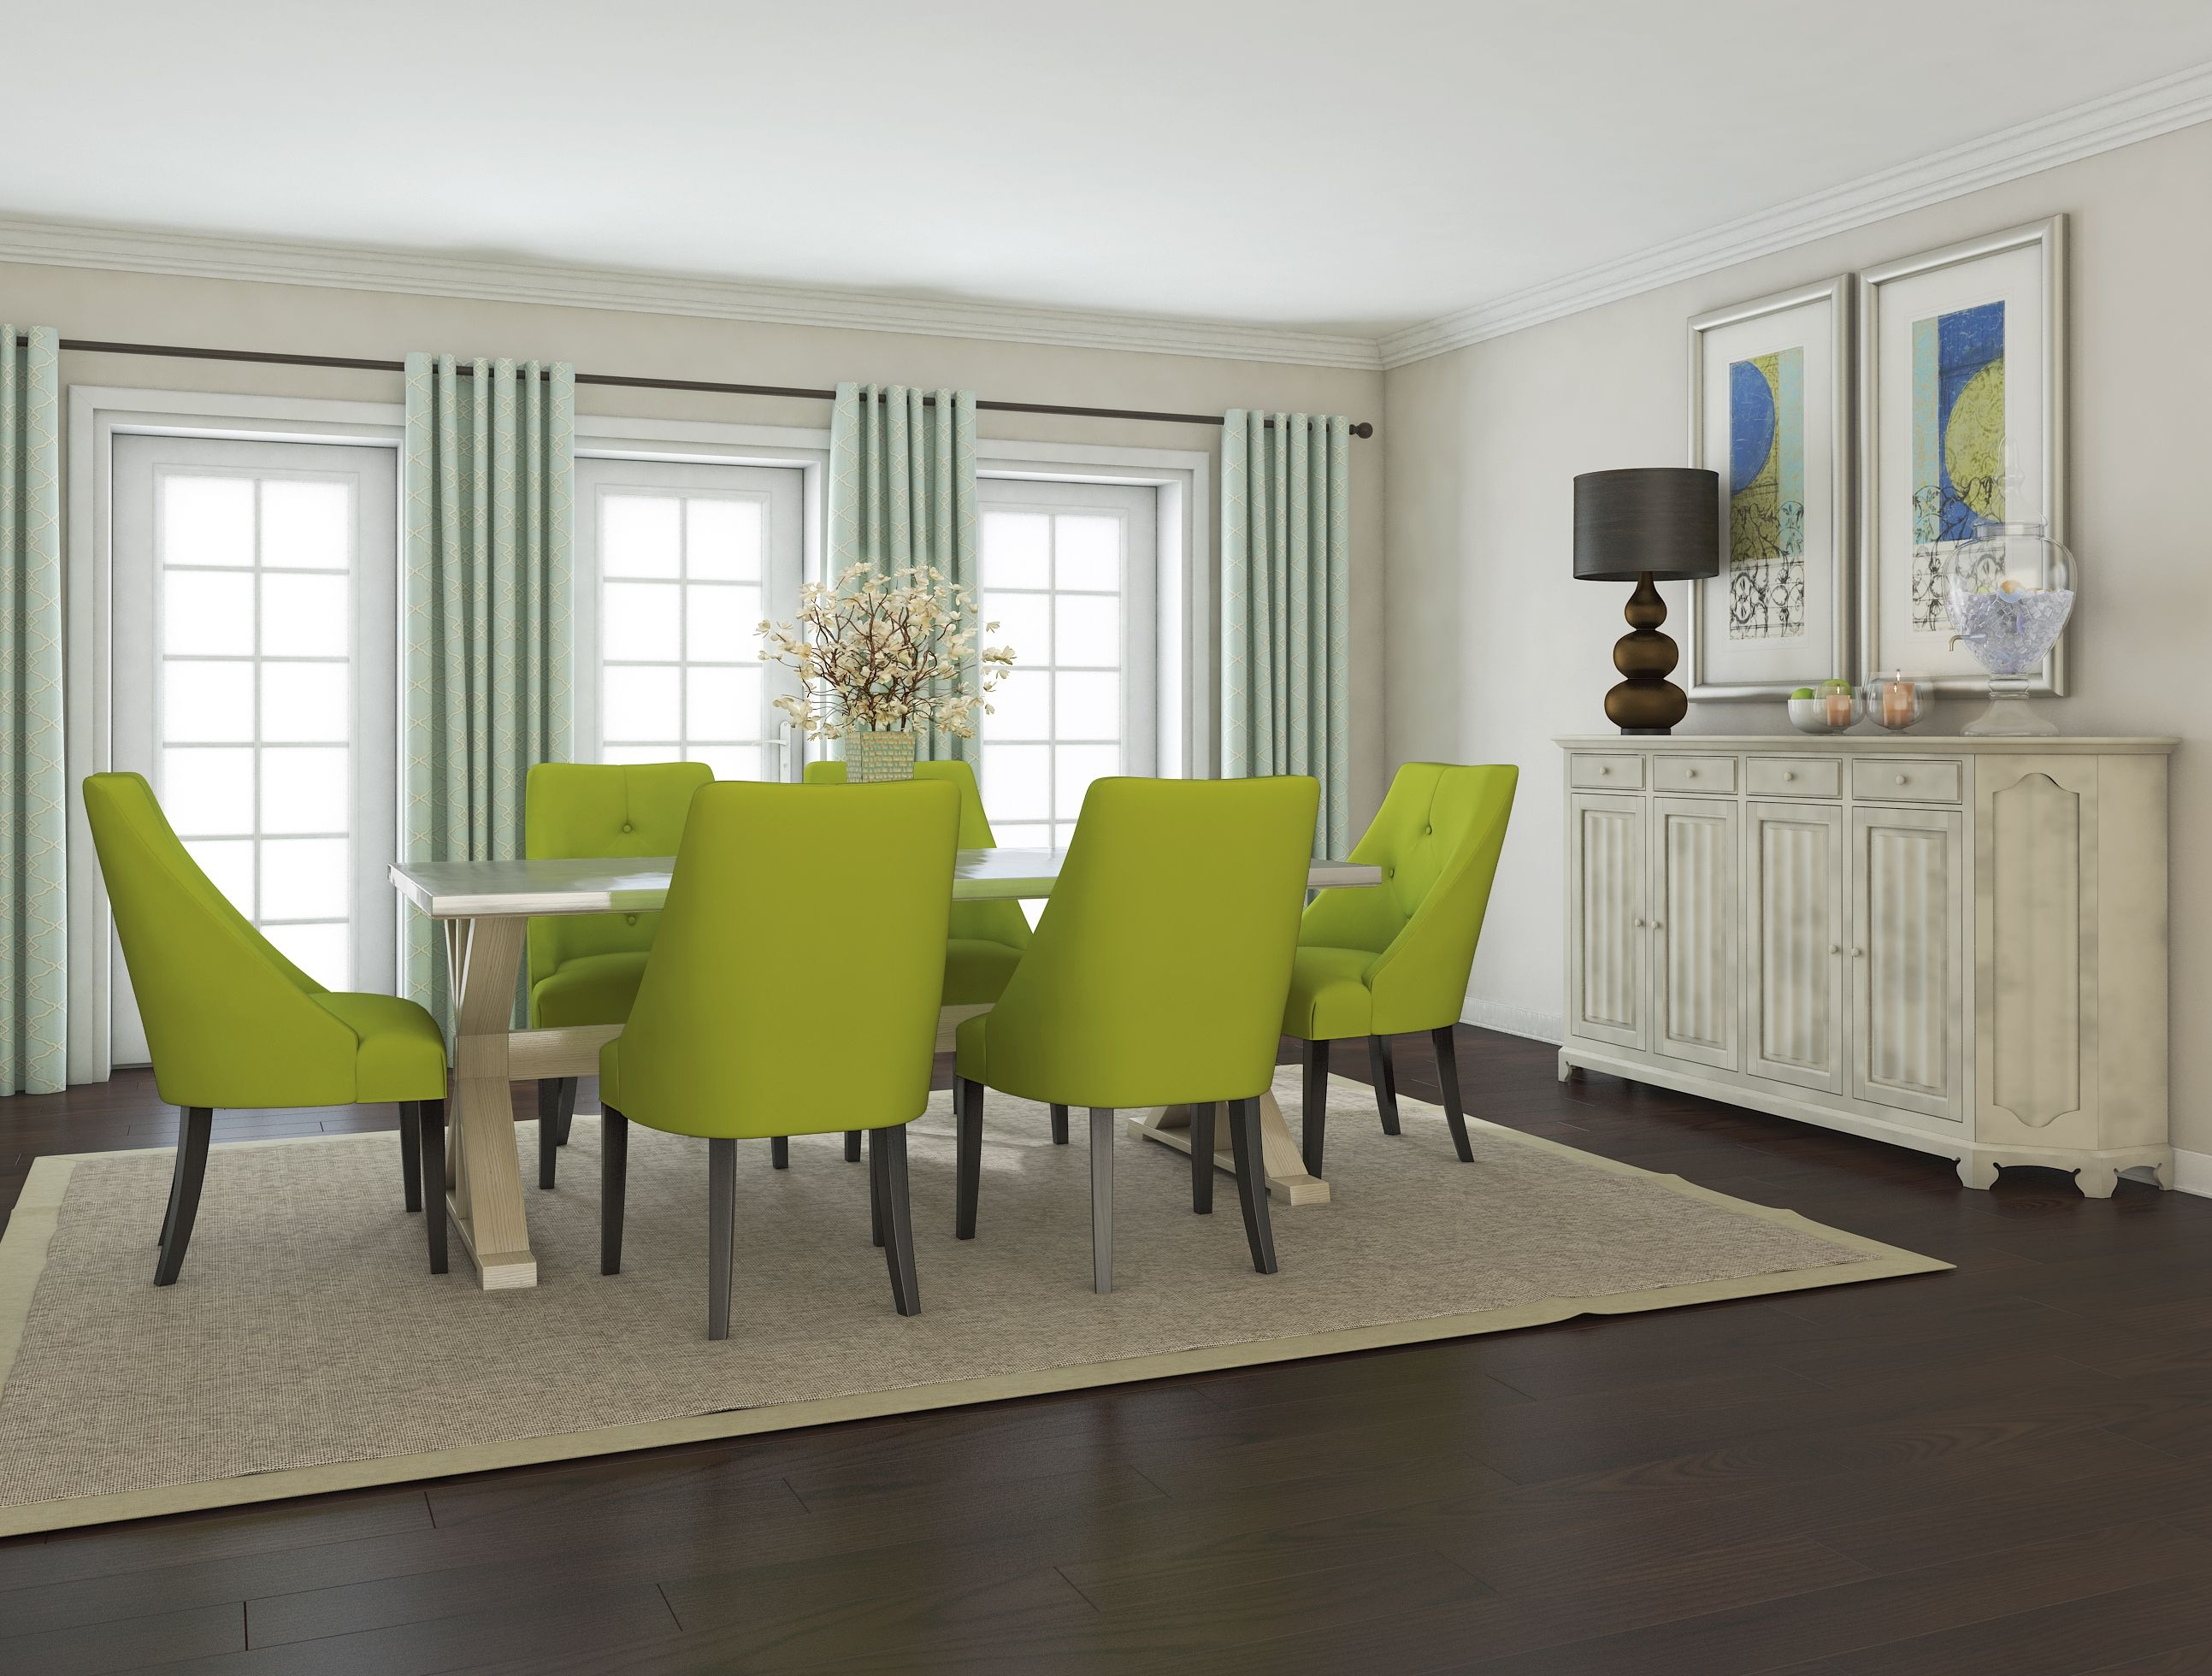 Lime Green Dining Room Ideas Modern Chairs Upholstered Grey Tables